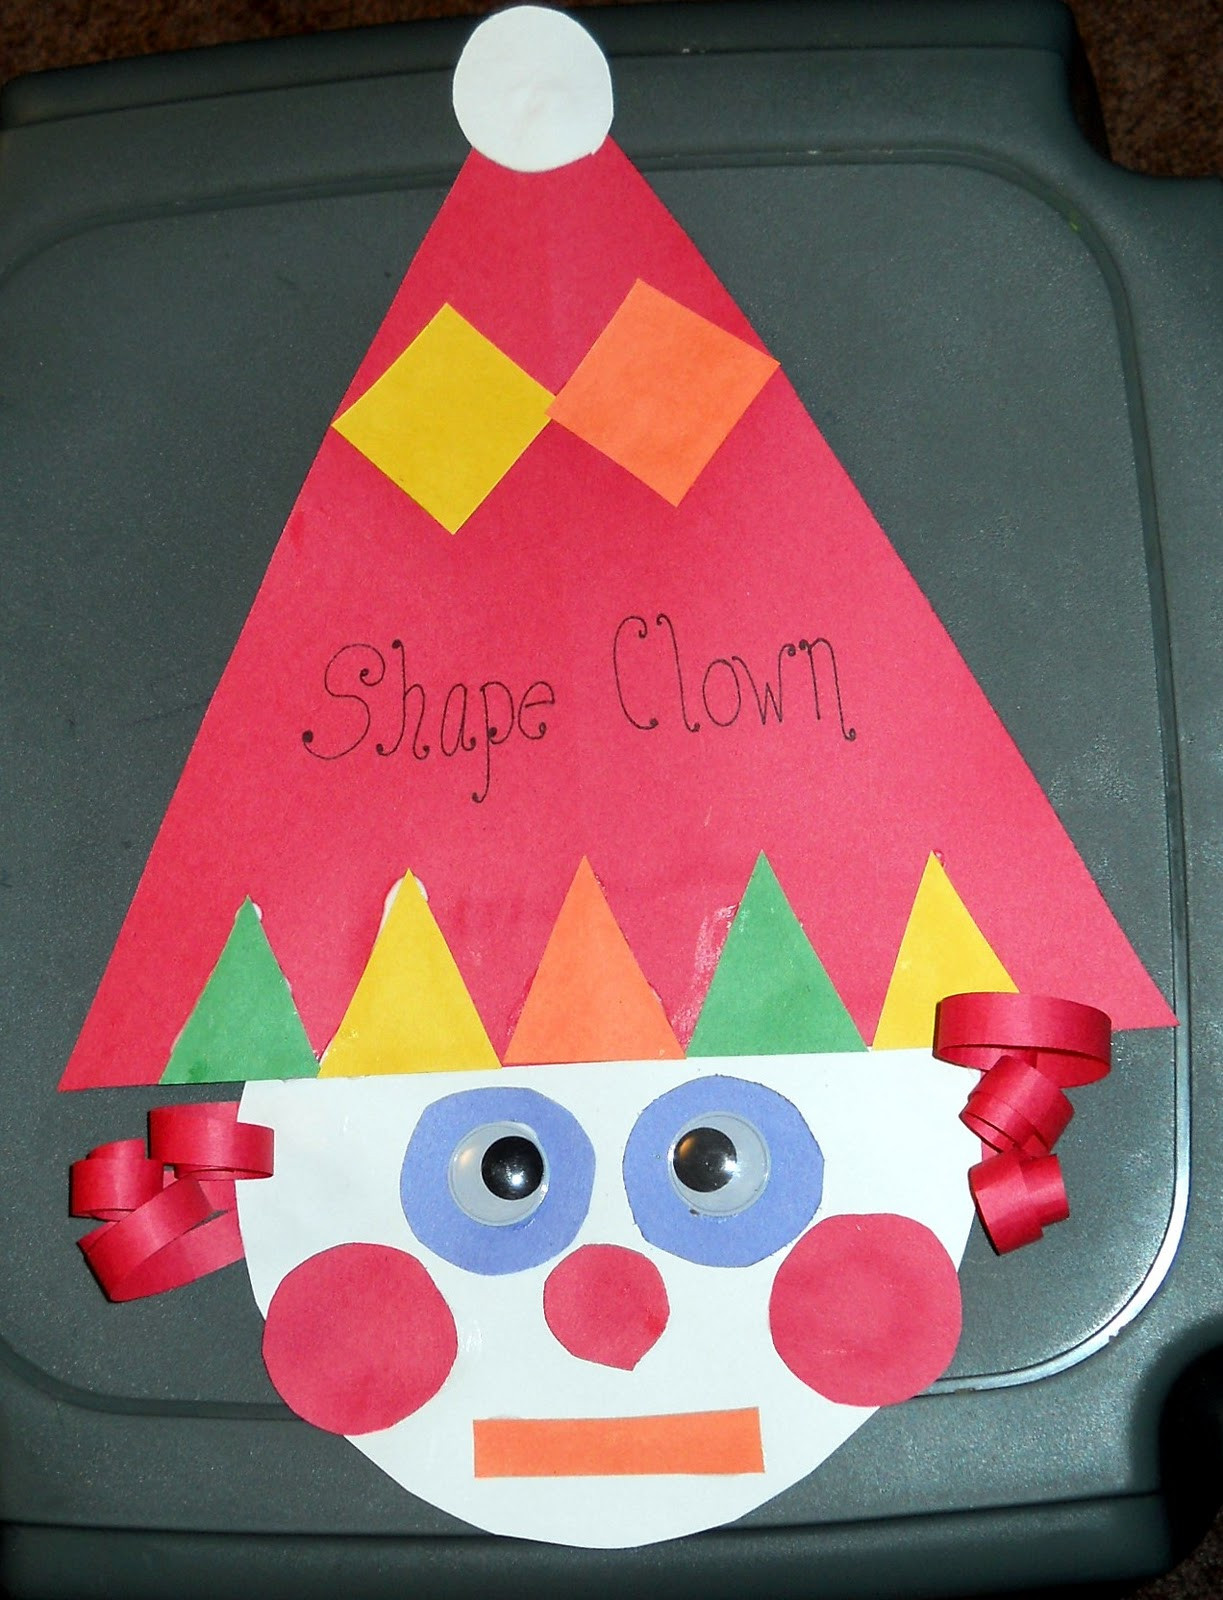 Best ideas about I Crafts For Preschoolers . Save or Pin Shapes Craft For Preschoolers Now.